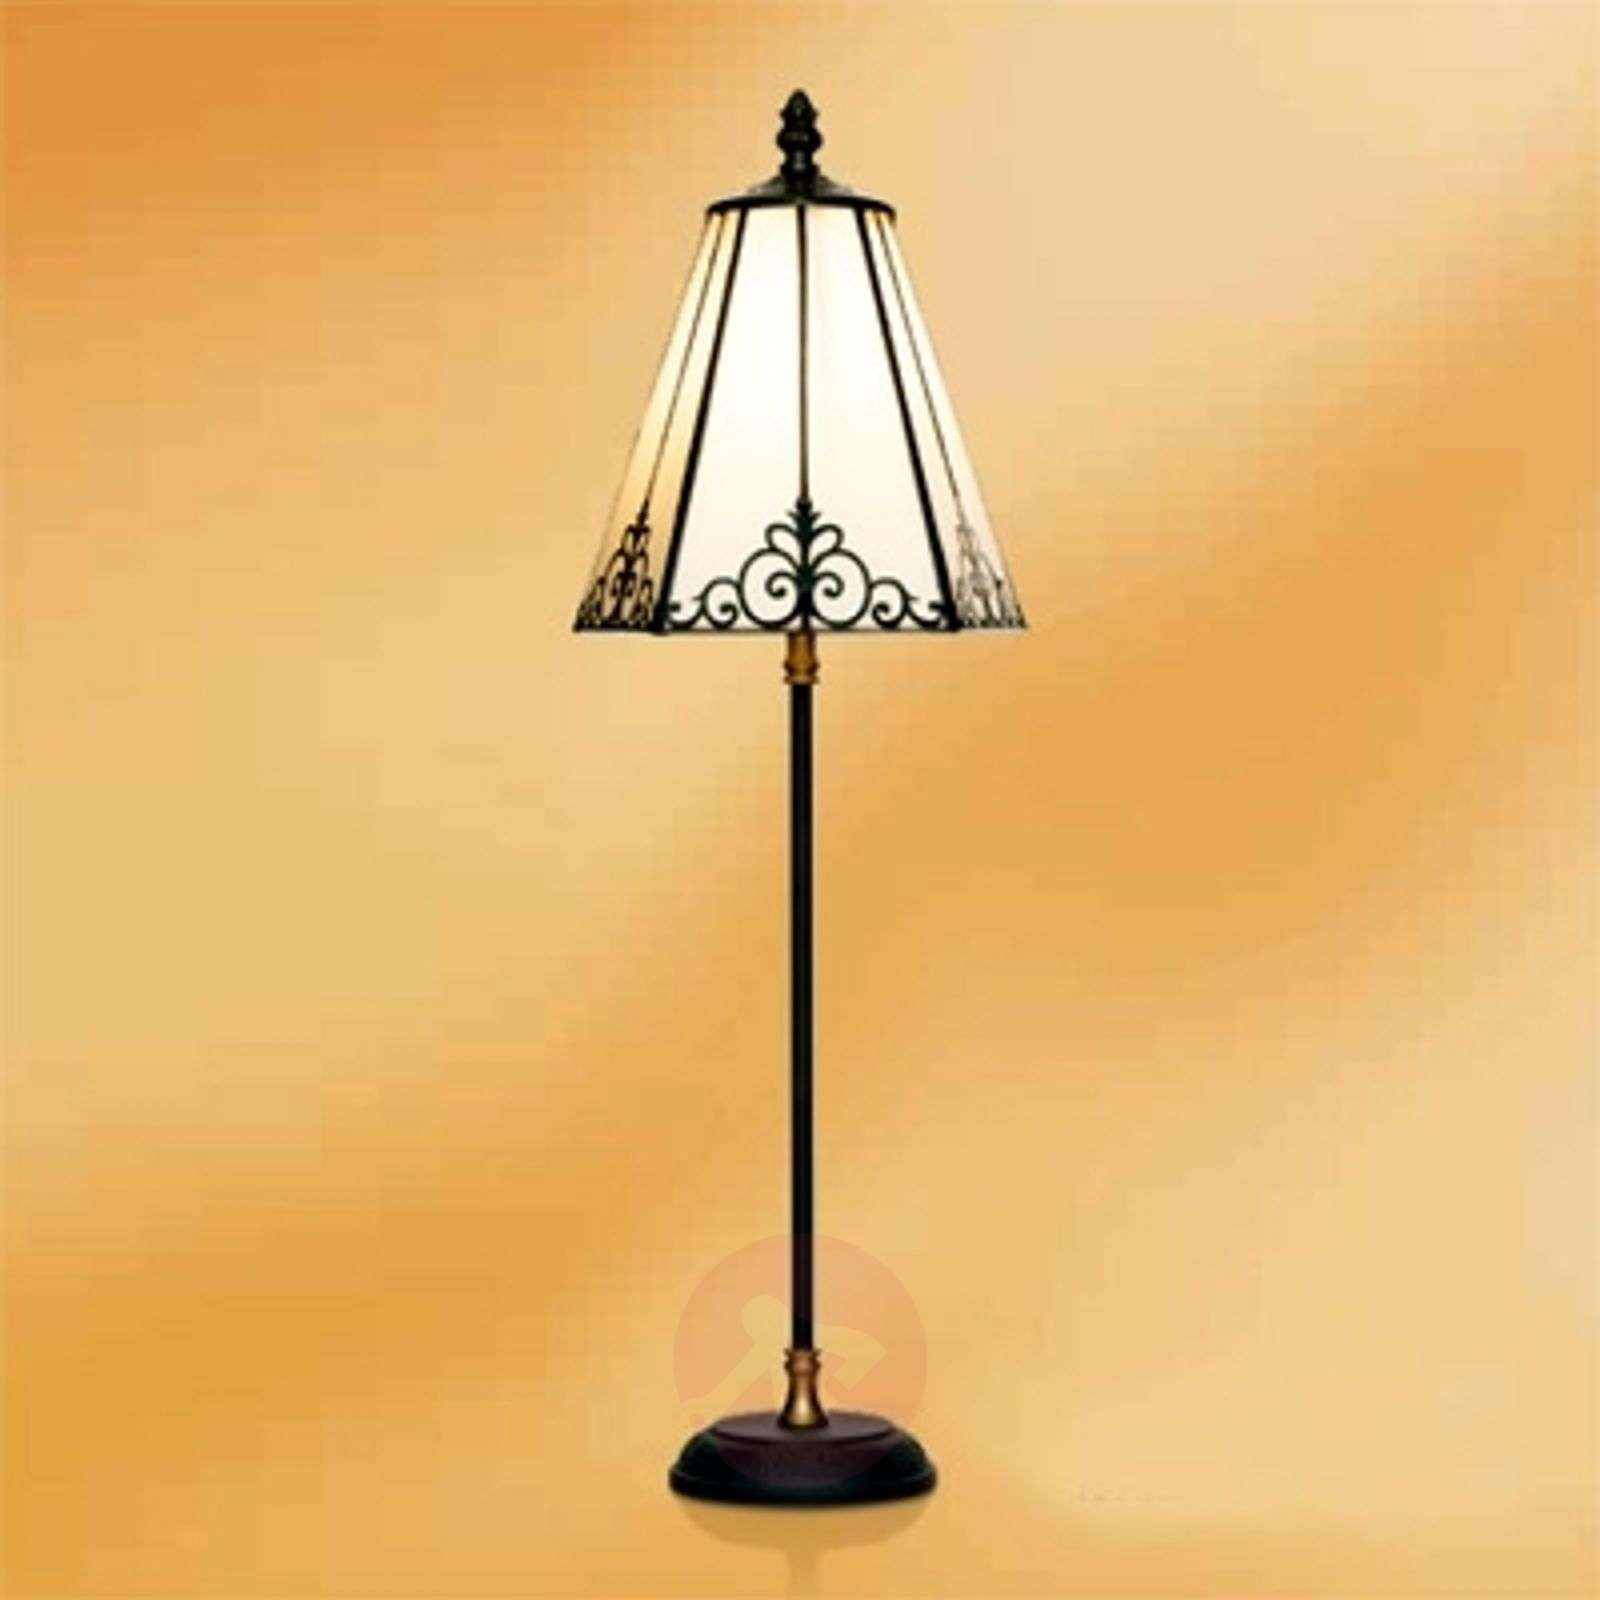 Exclusive table lamp Janett, 57 cm-1032310-01